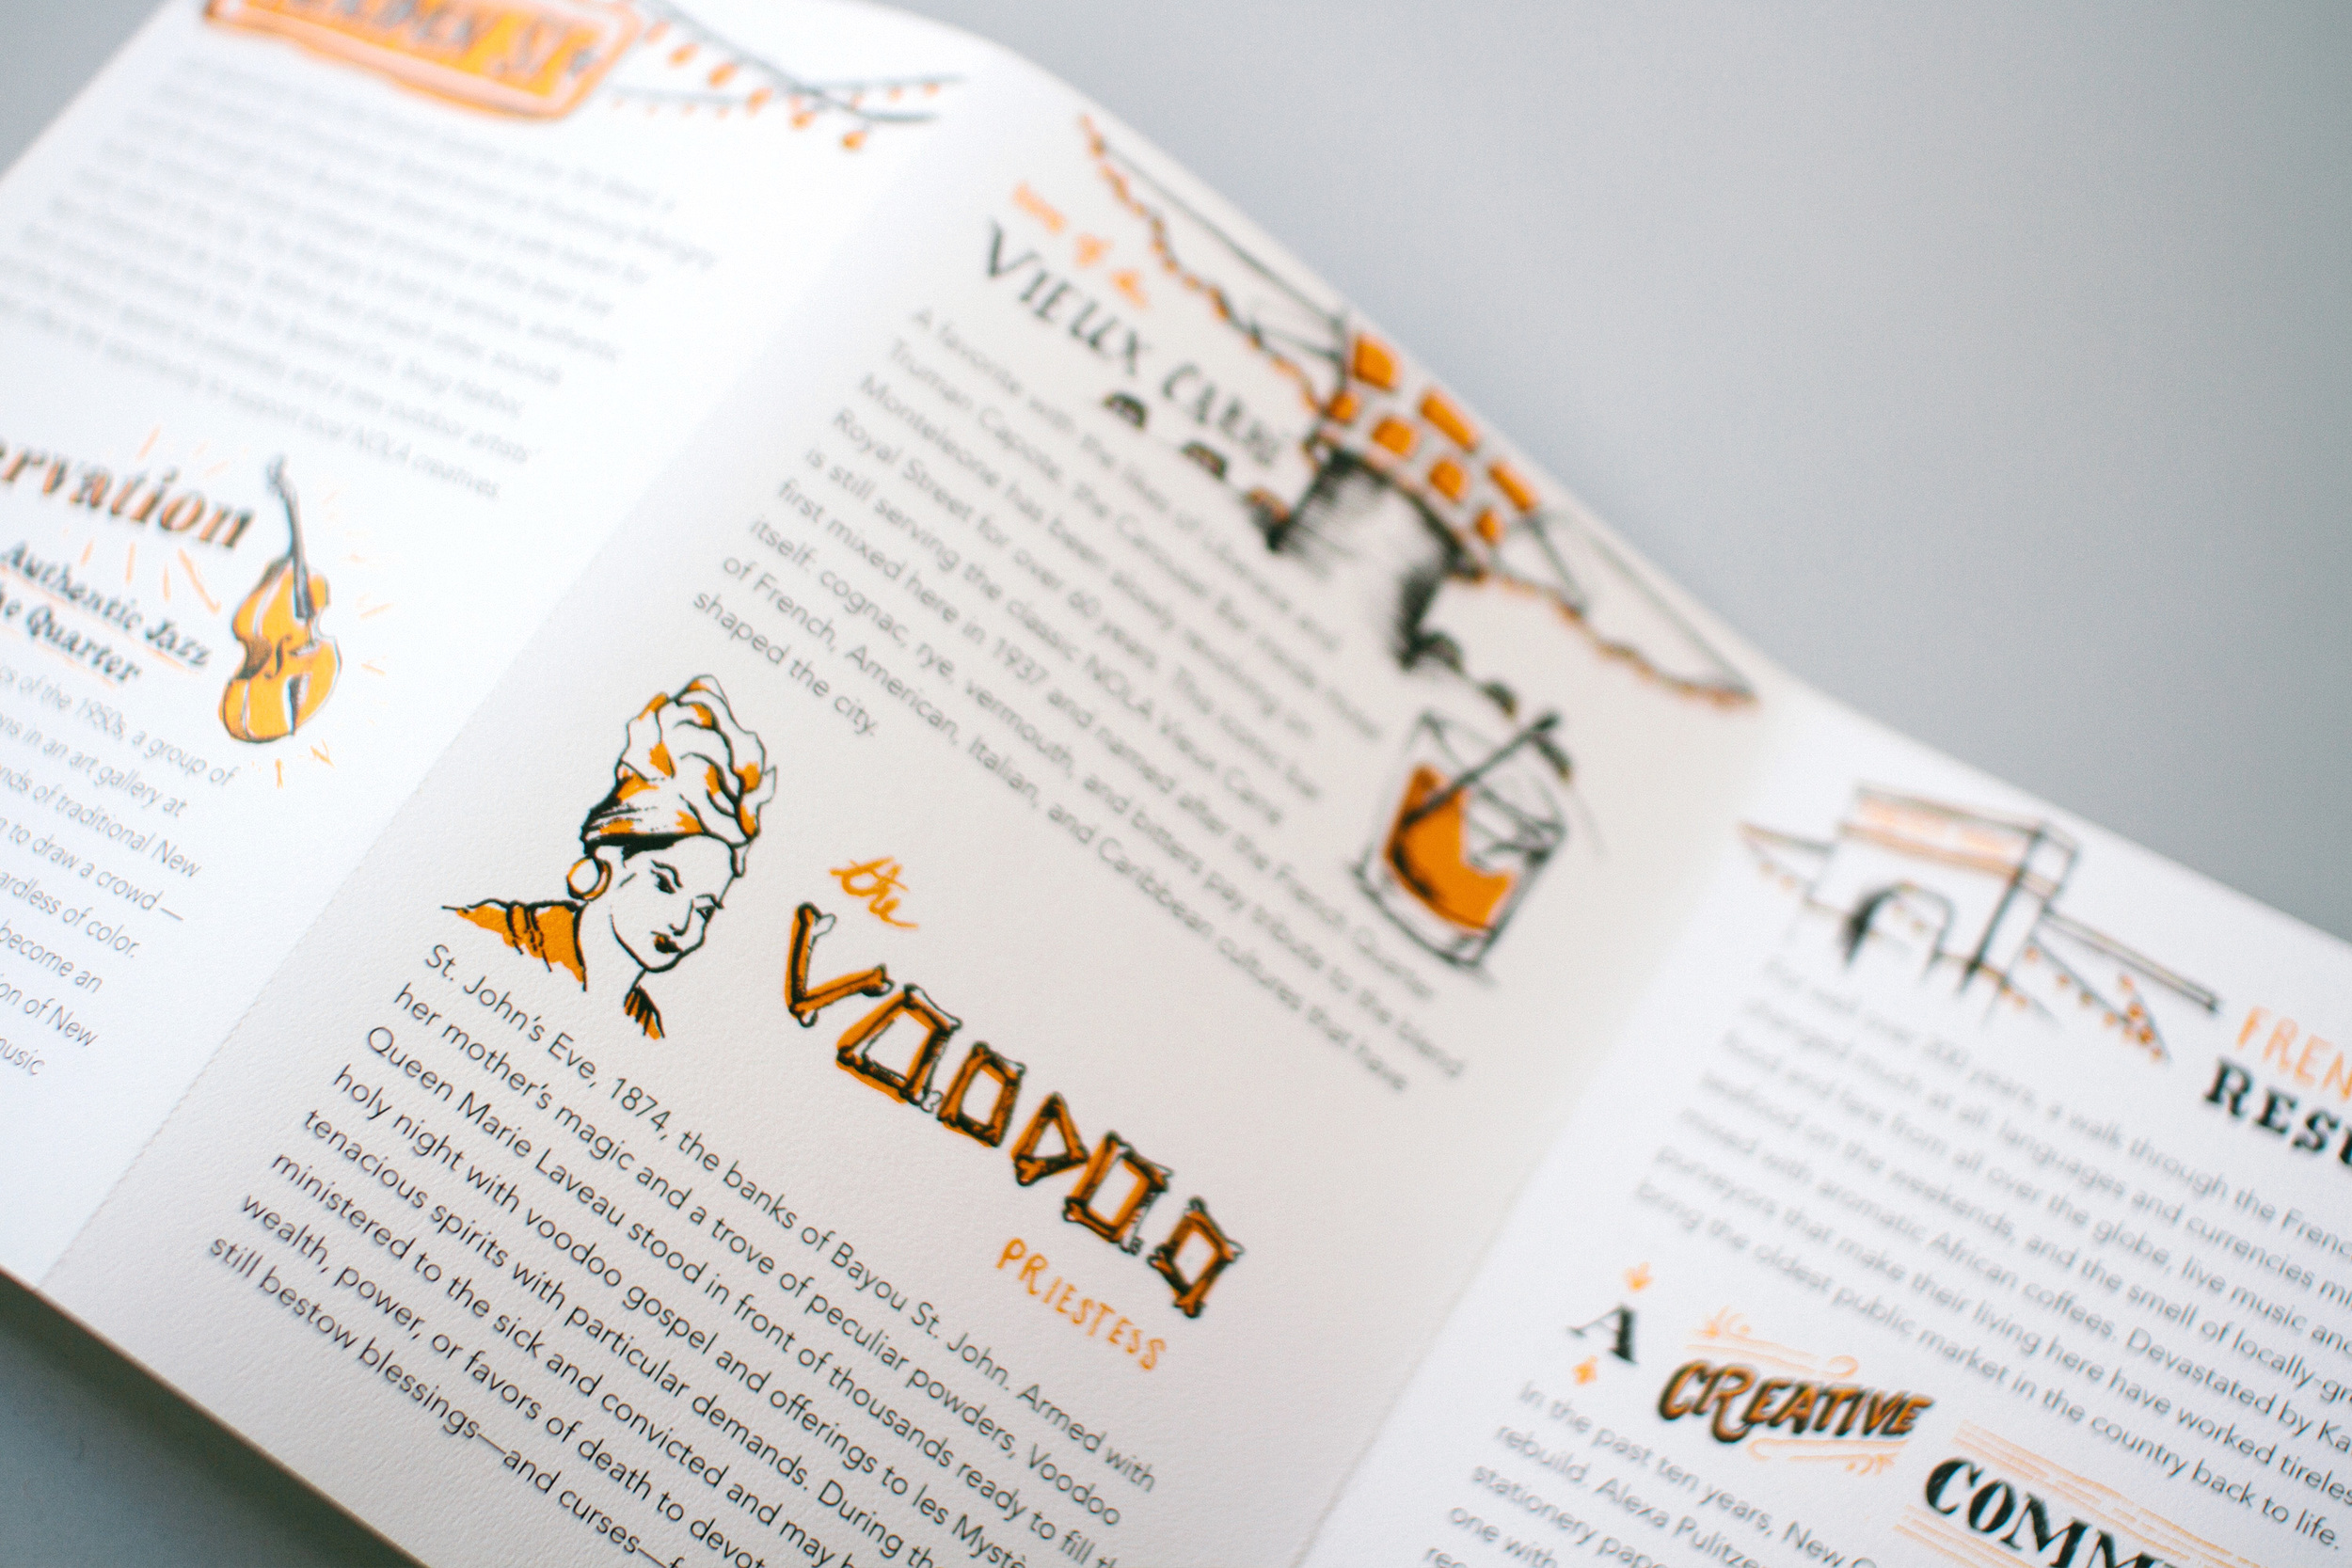 The Voodoo Priestess, hand lettering and hand drawn type with an illustrated portrait of Marie Laveau and biography. The backs of each map also featured fun facts and historical and cultural information about New Orleans.